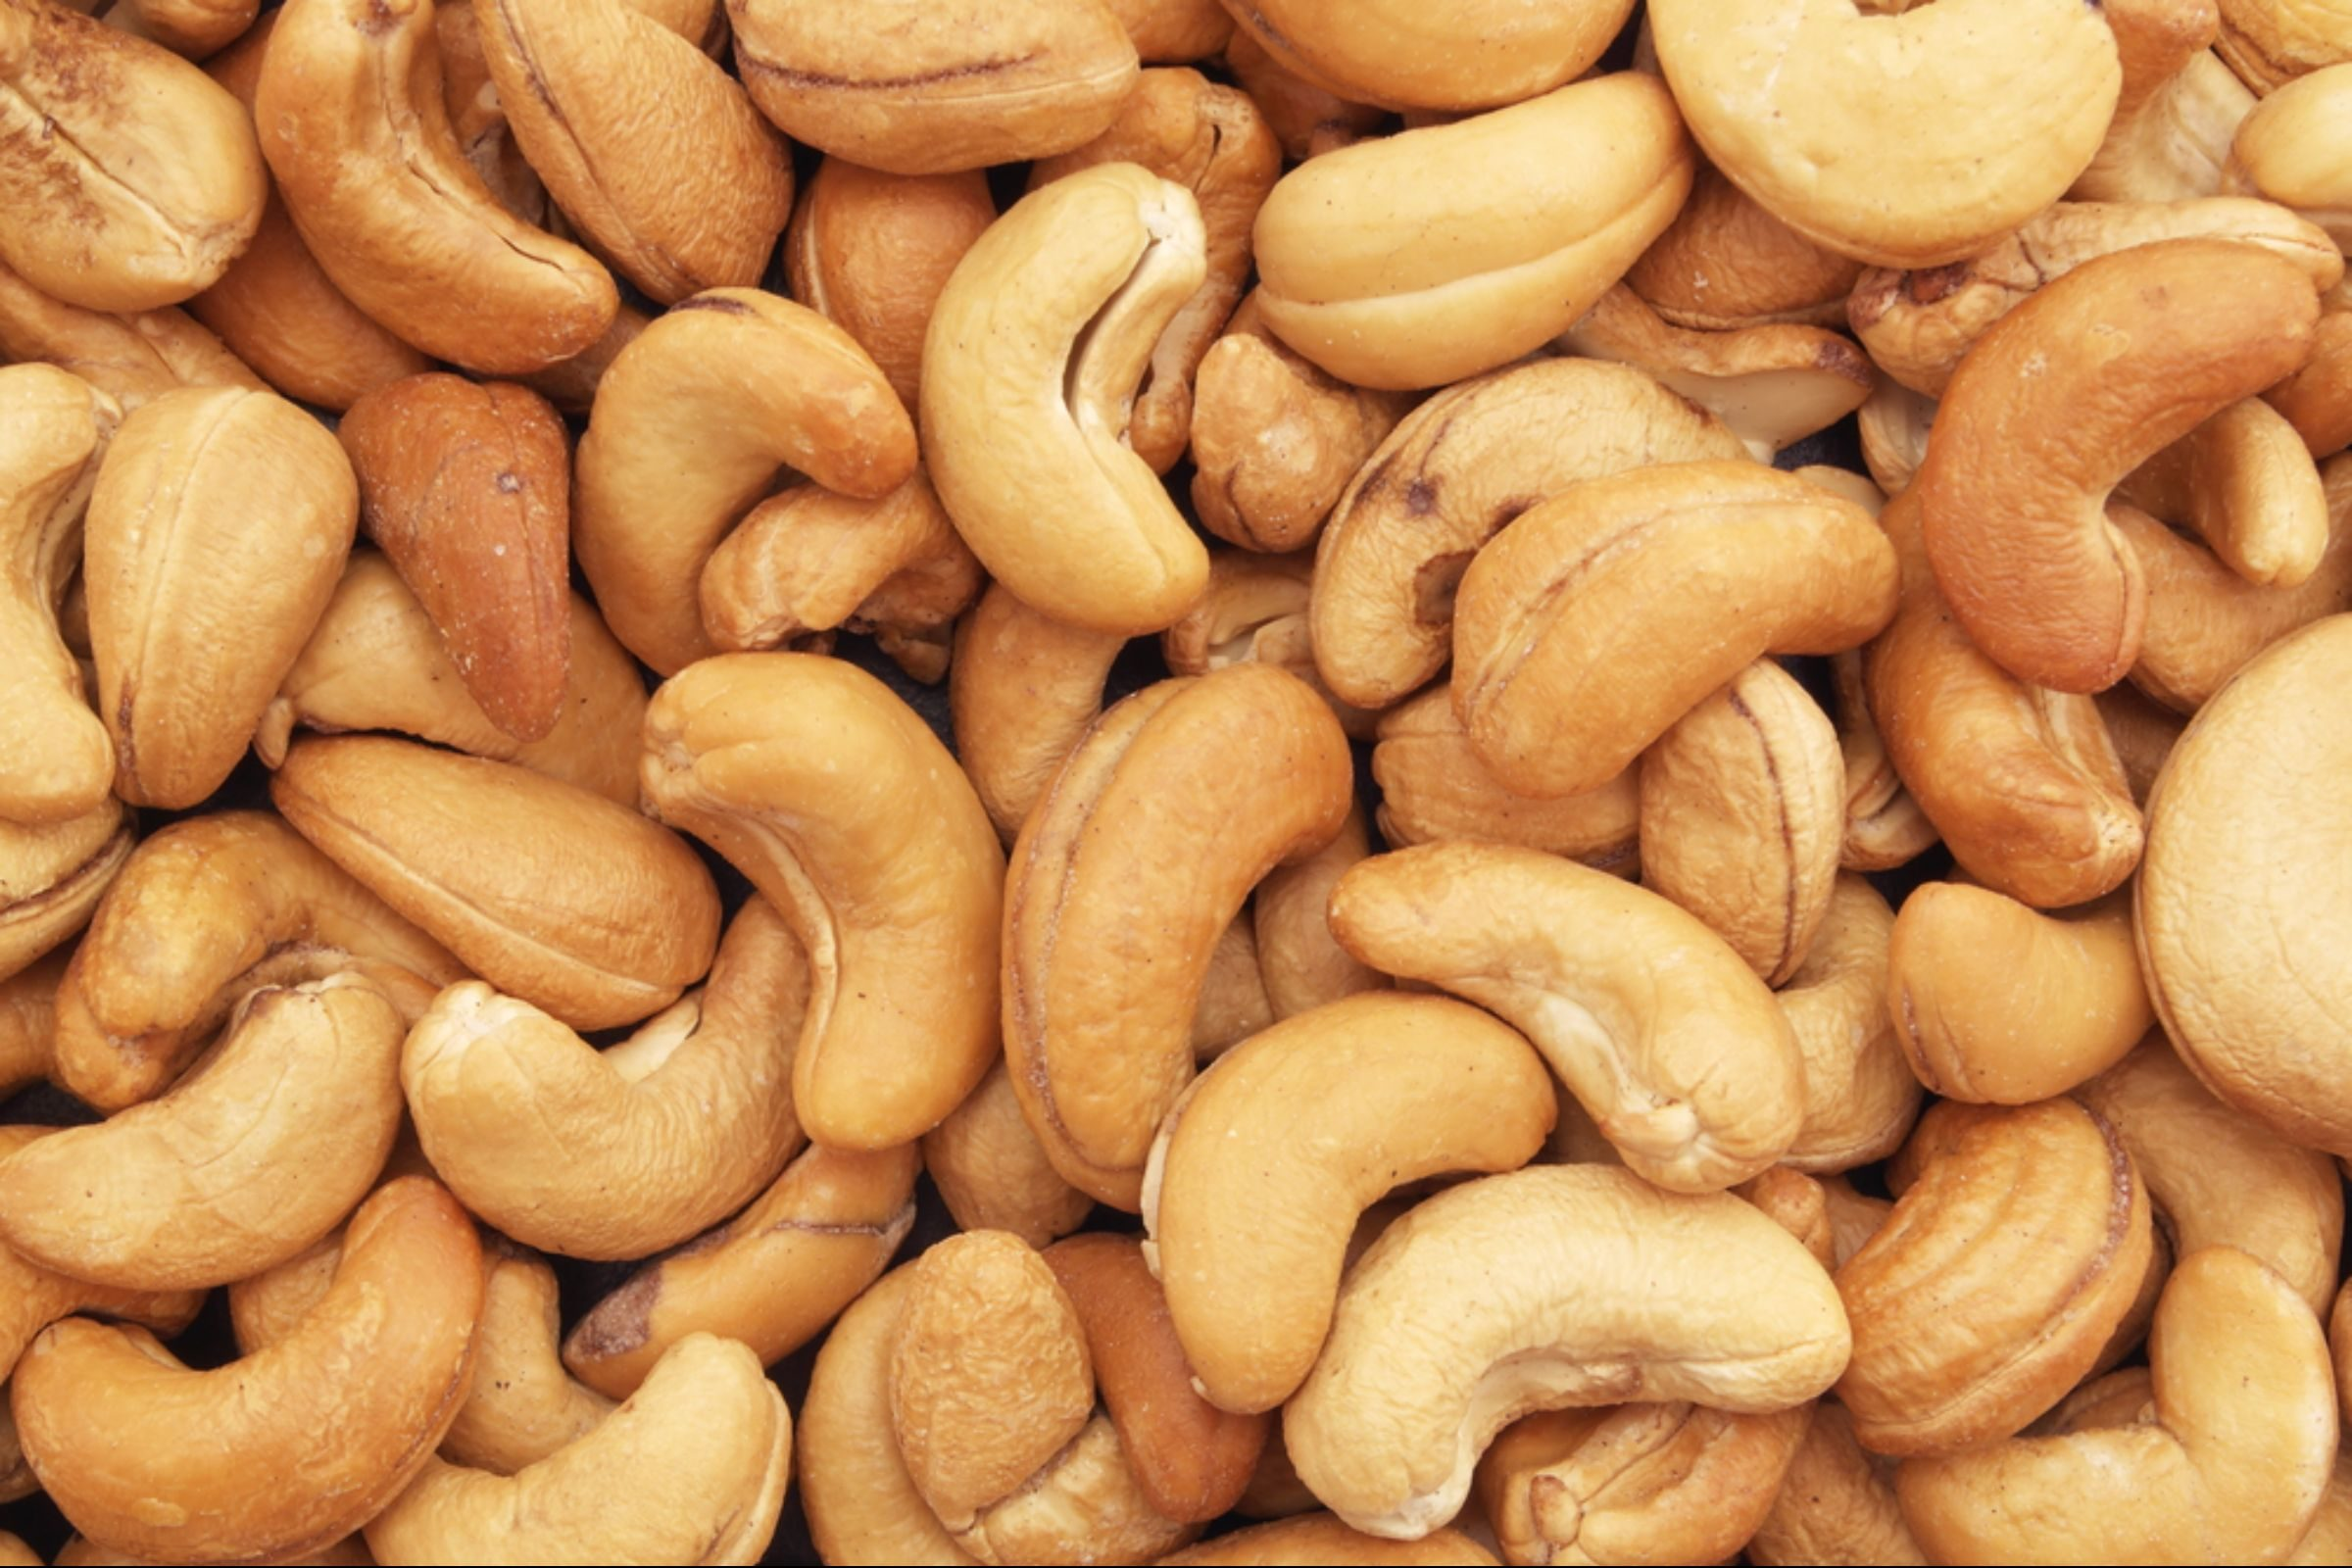 Cashews and other assorted nuts